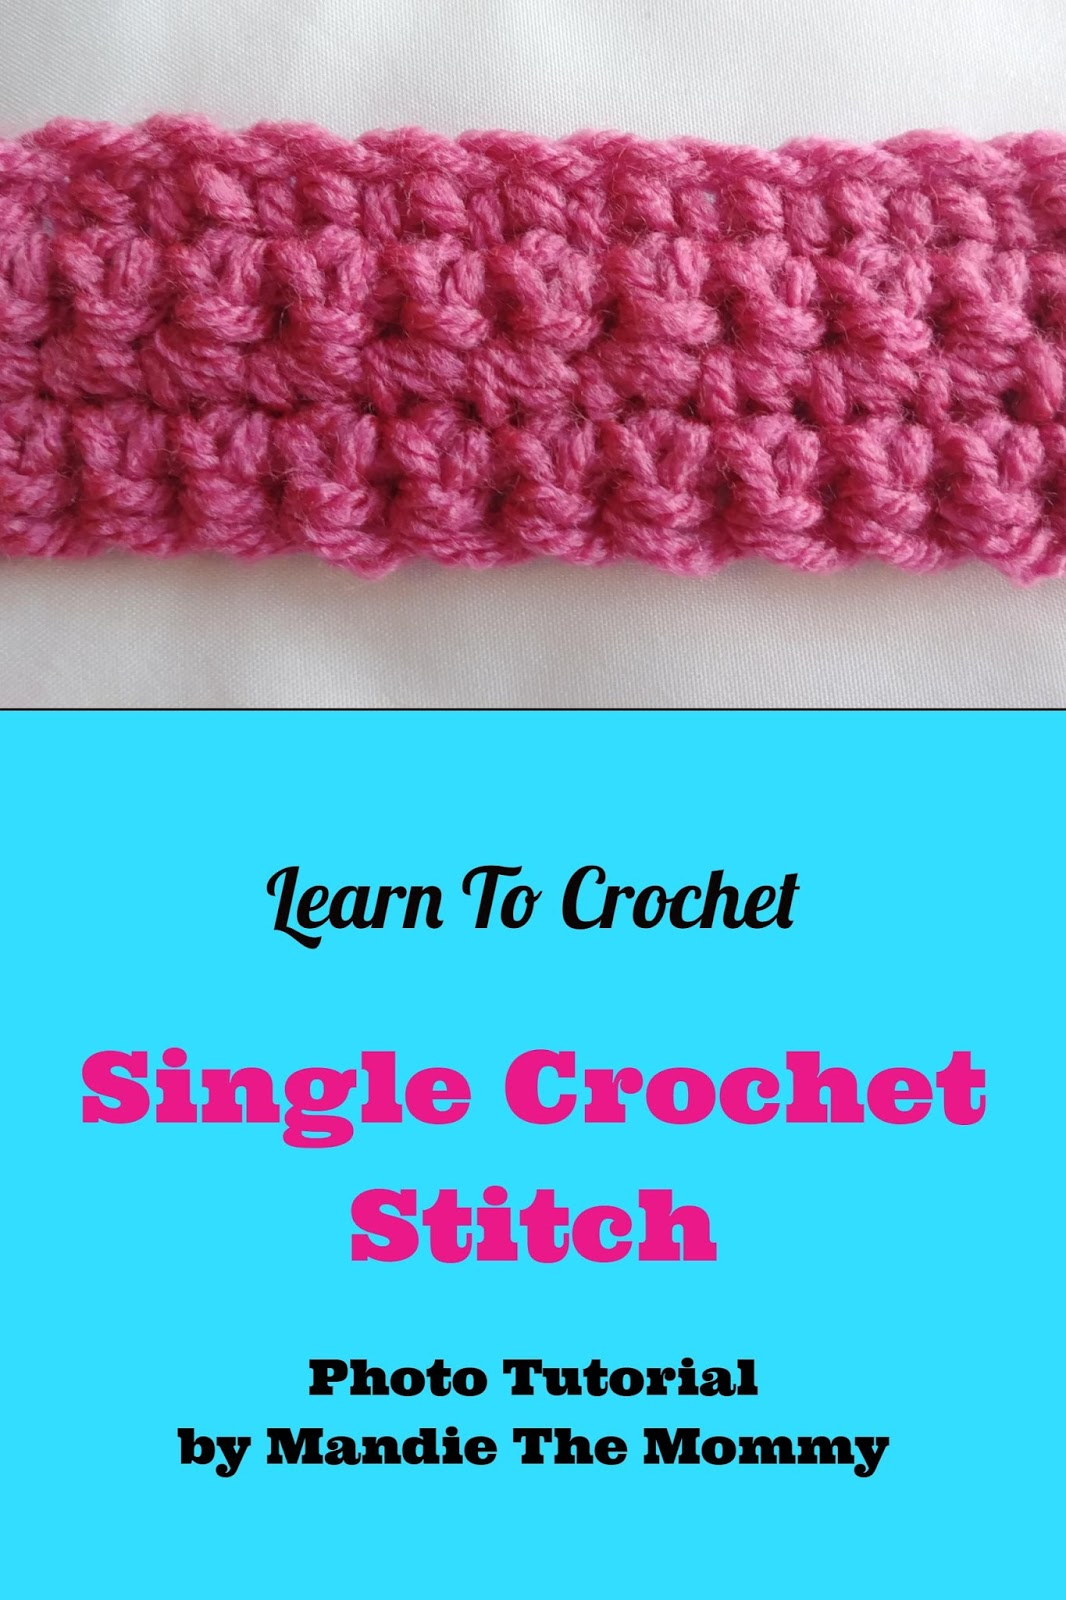 Introduction to Crochet: Single Crochet and Slip Stitch